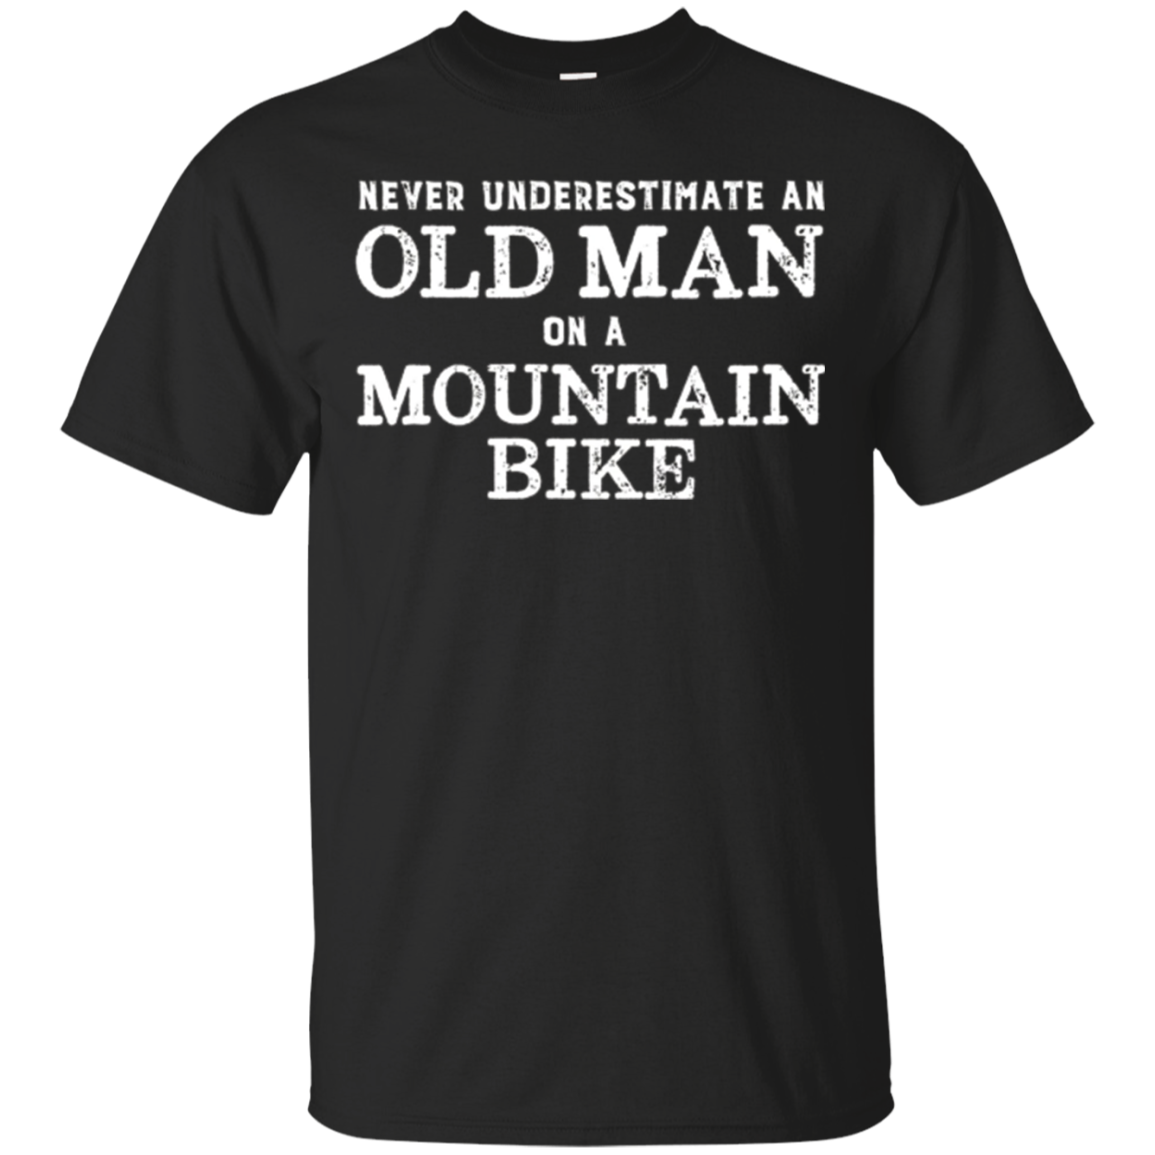 Mountain biker gifts - Never underestimate an old man